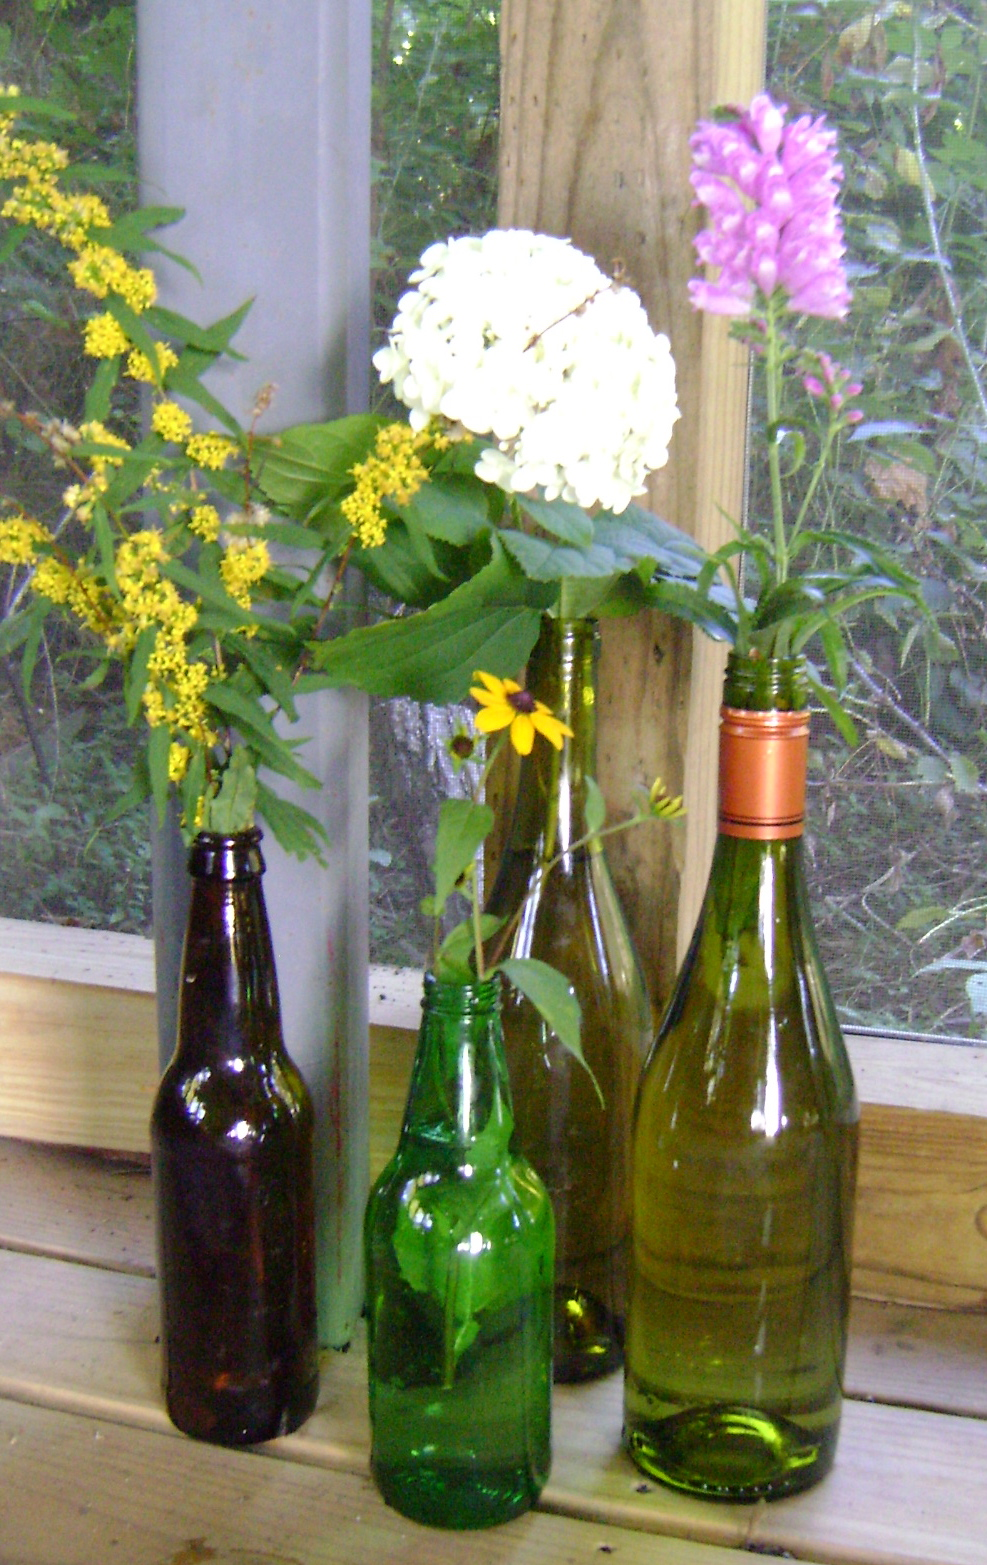 301 moved permanently for Wine bottle vase ideas